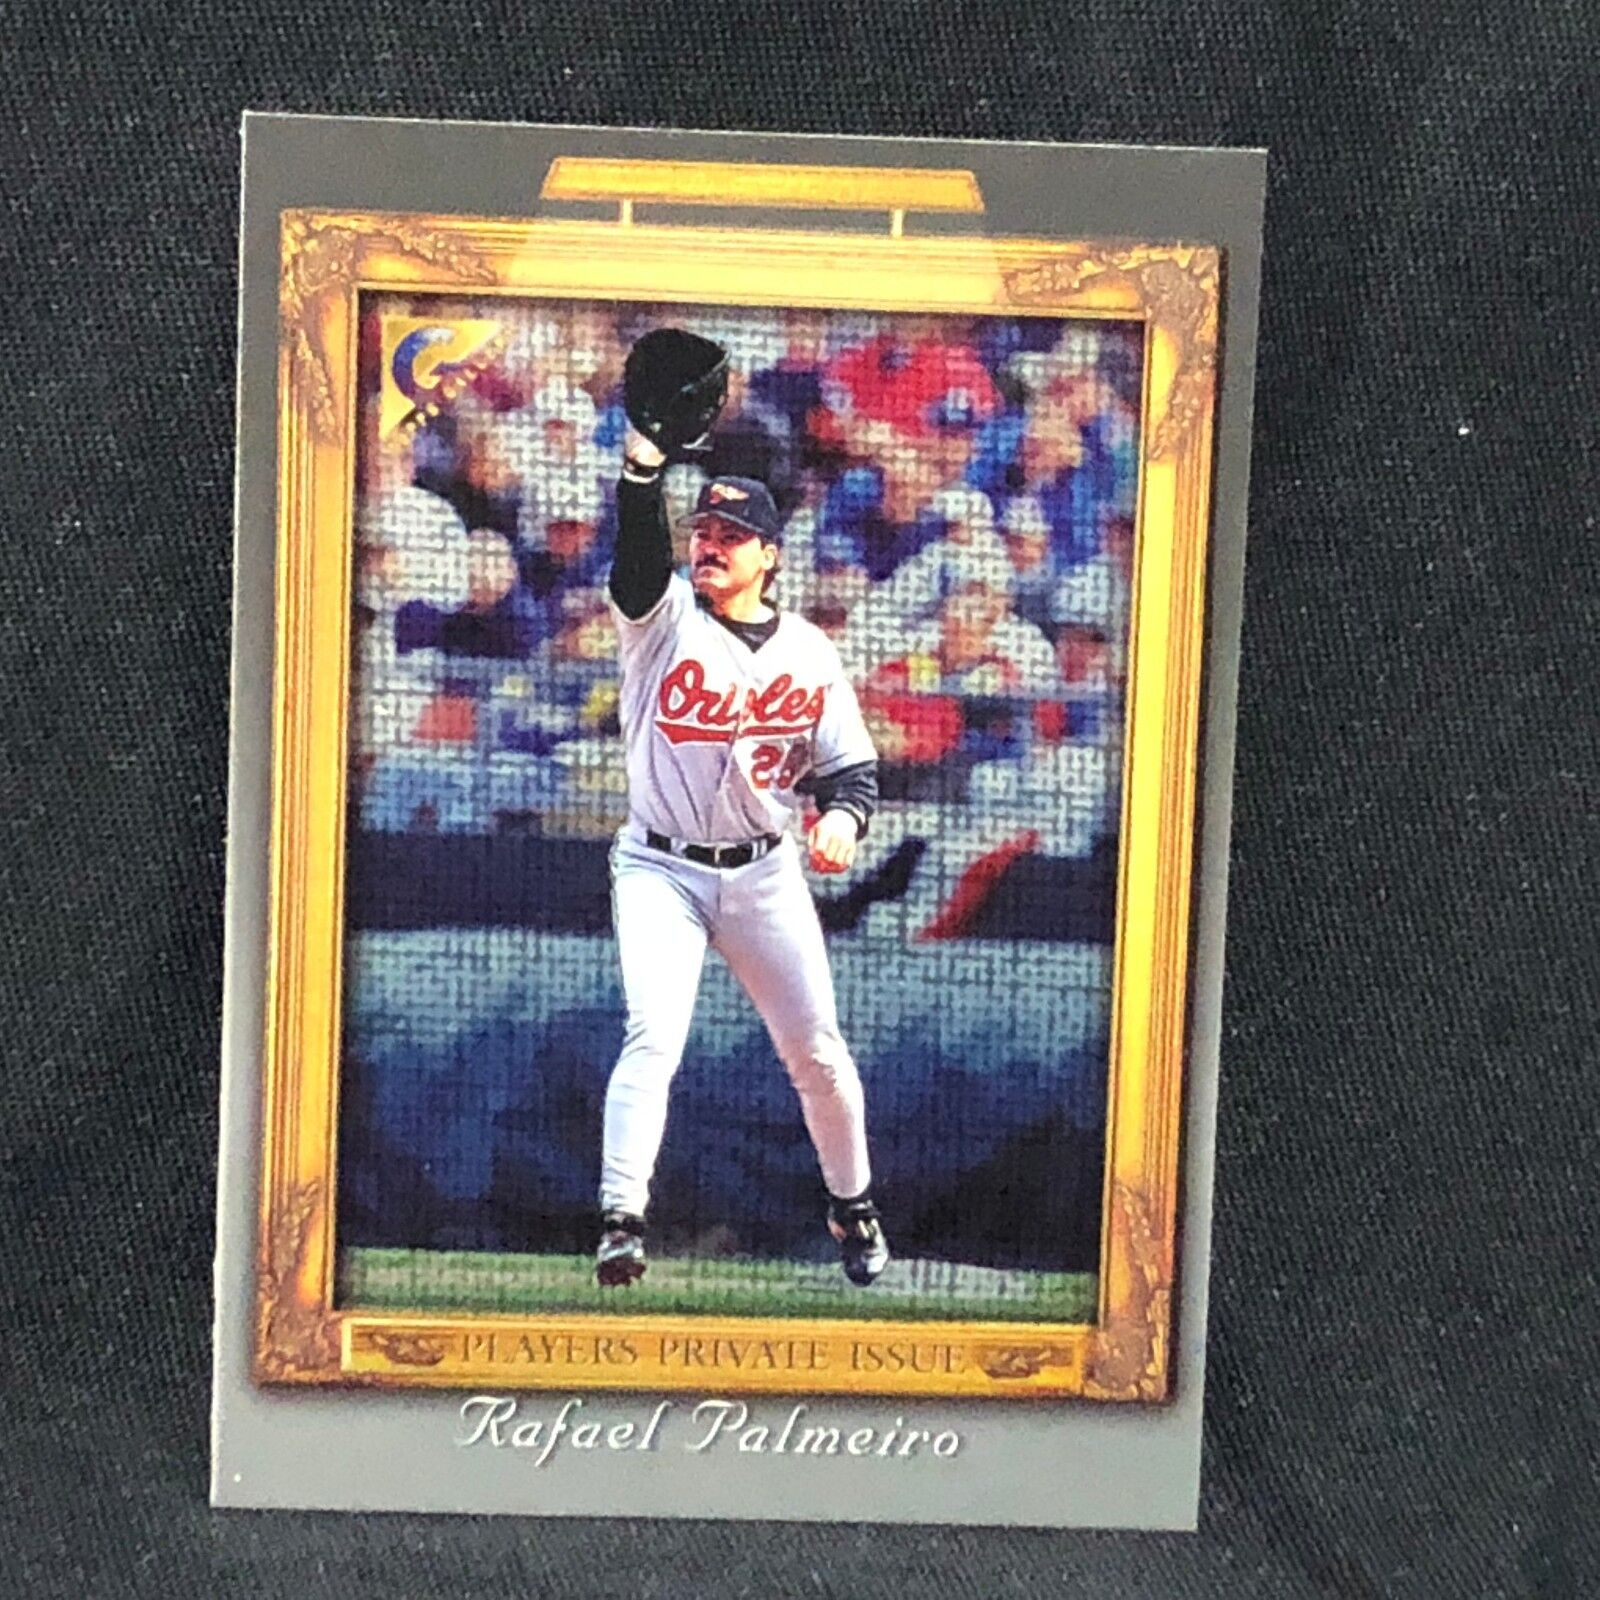 RAFAEL PALMEIRO ORIOLES 1998 TOPPS GALLERY #133 PLAYERS PRIVATE ISSUE #d 195/250